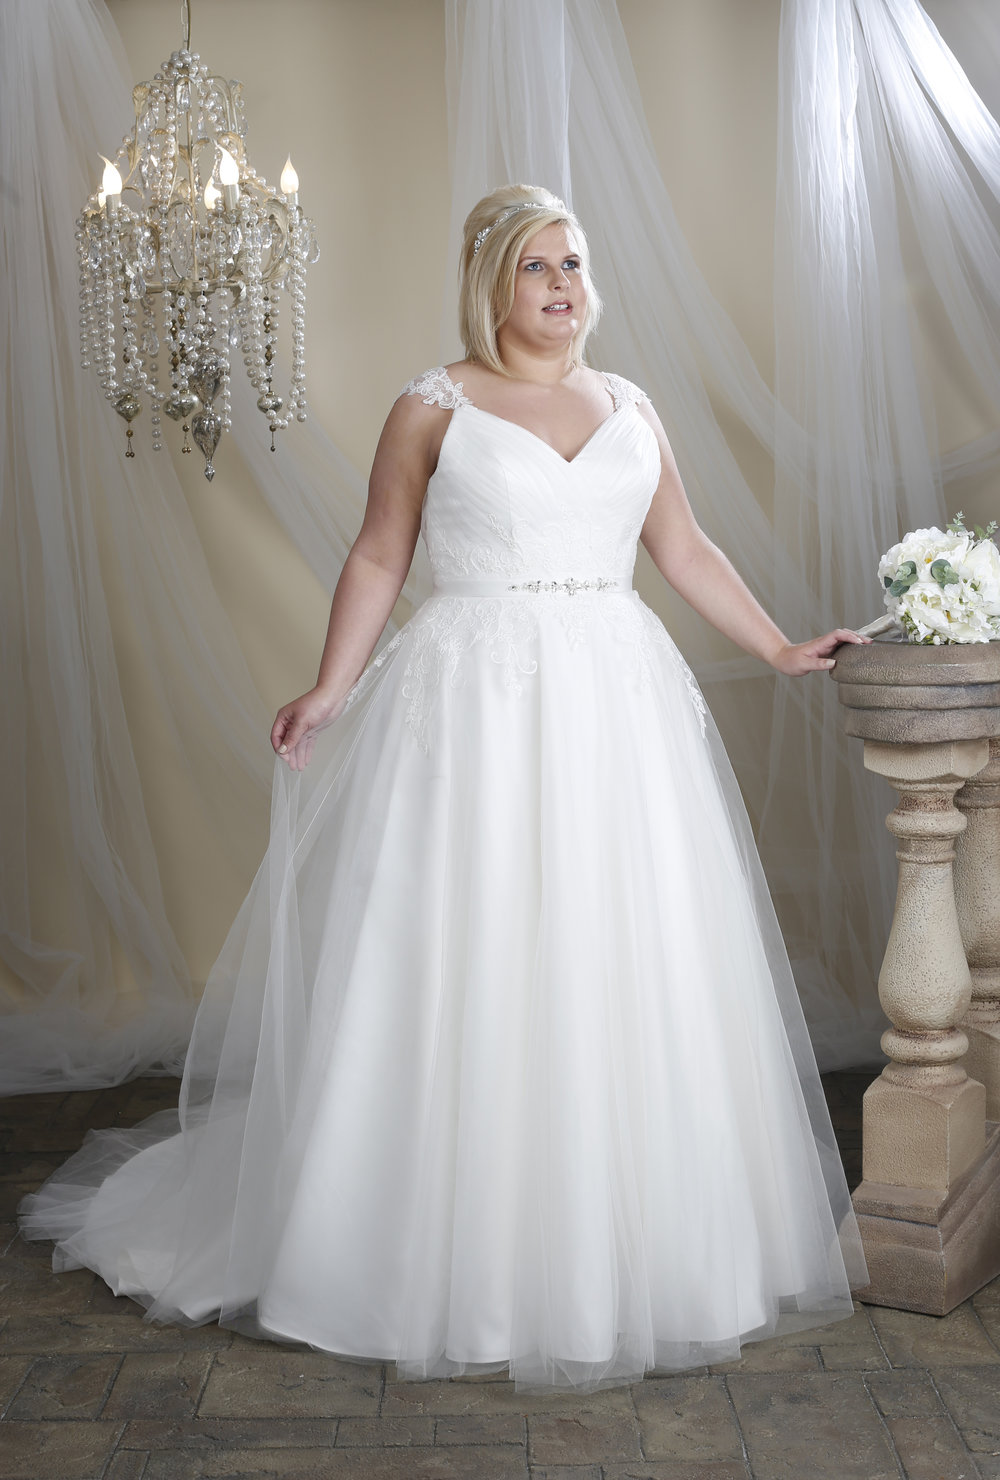 Our Wedding Dresses | Something Old Something New Bridal Boutique ...